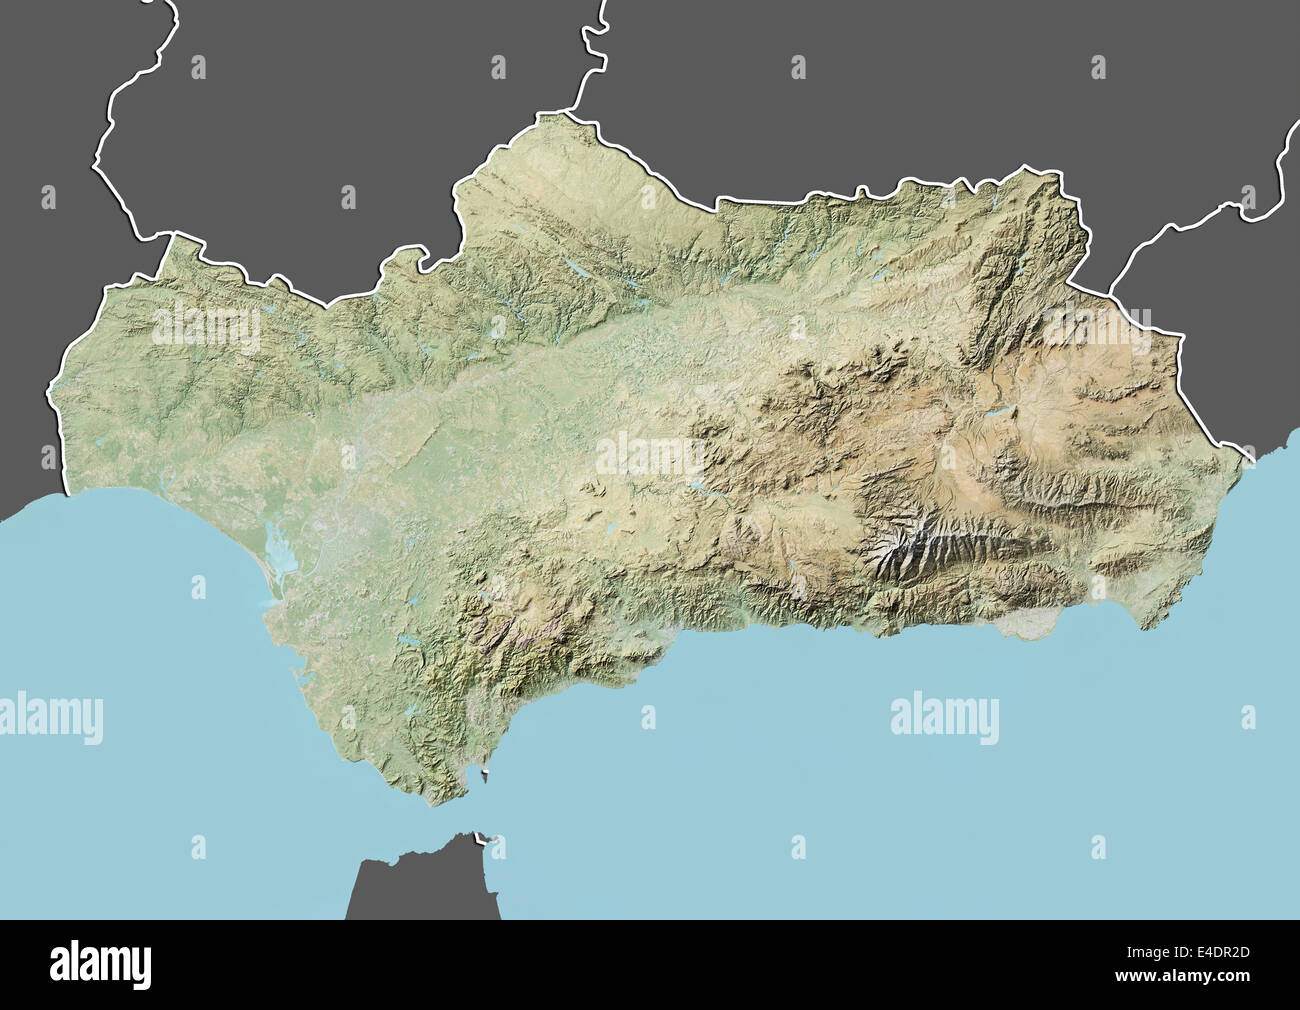 Andalusia Spain Relief Map Stock Photo Royalty Free Image - Map of andalusia